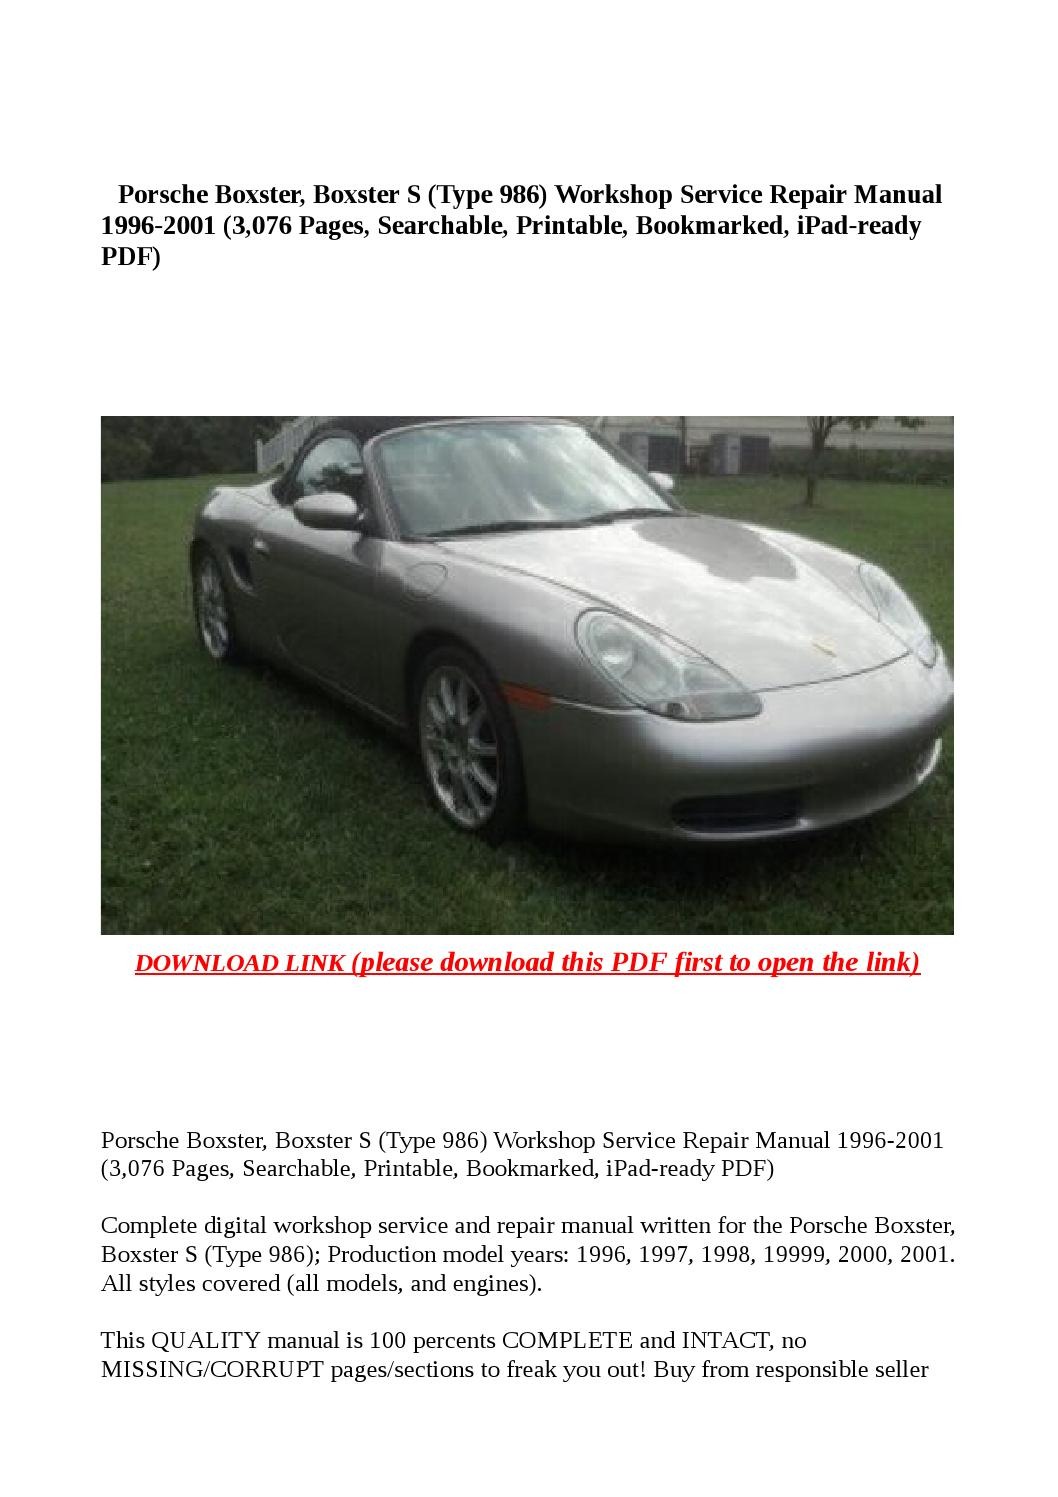 Porsche boxster, boxster s (type 986) workshop service repair manual 1996  2001 (3,076 pages, searcha by buhbu - issuu